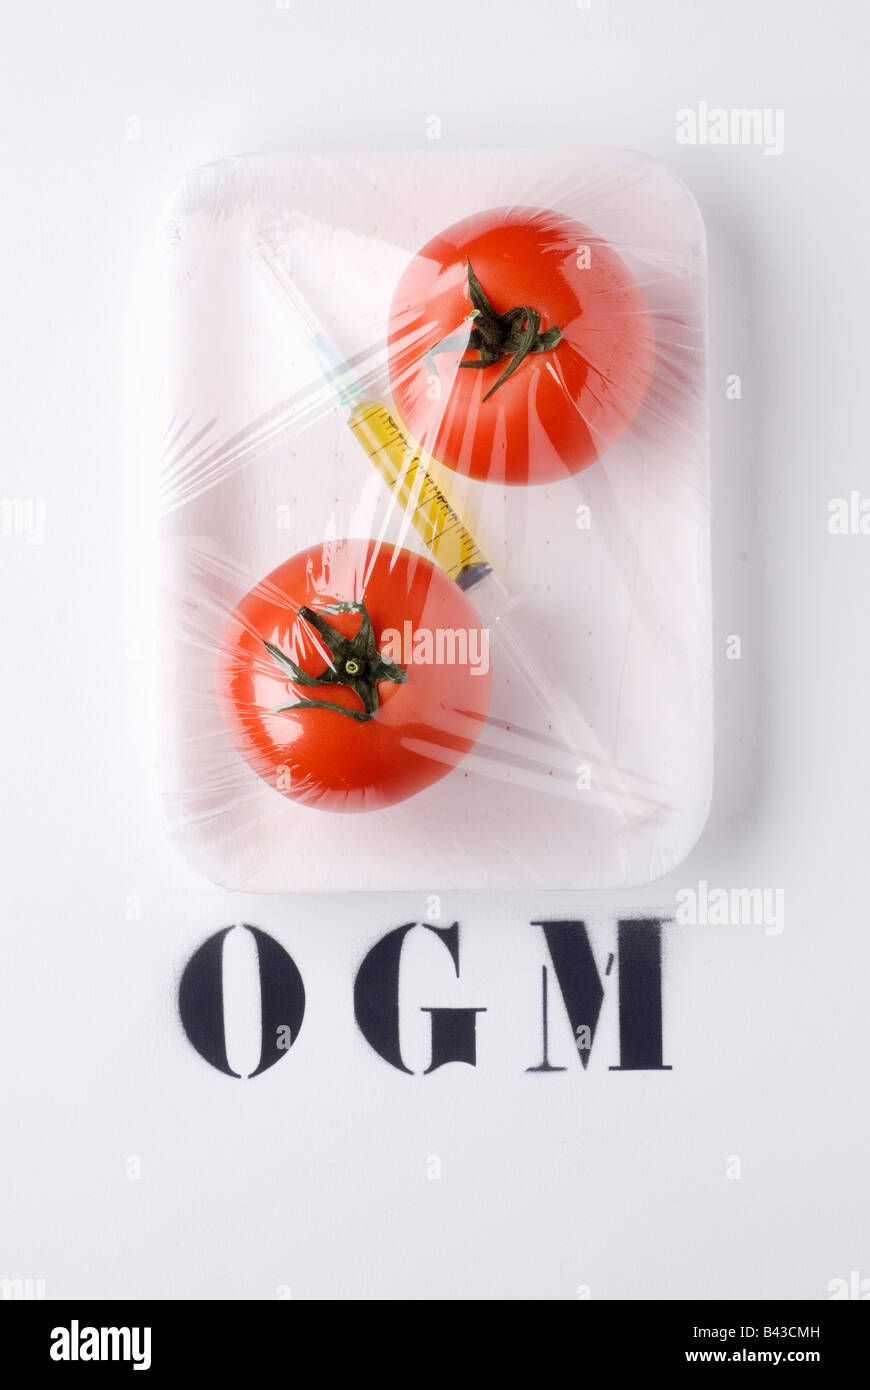 Tomates GM et de seringues Photo Stock